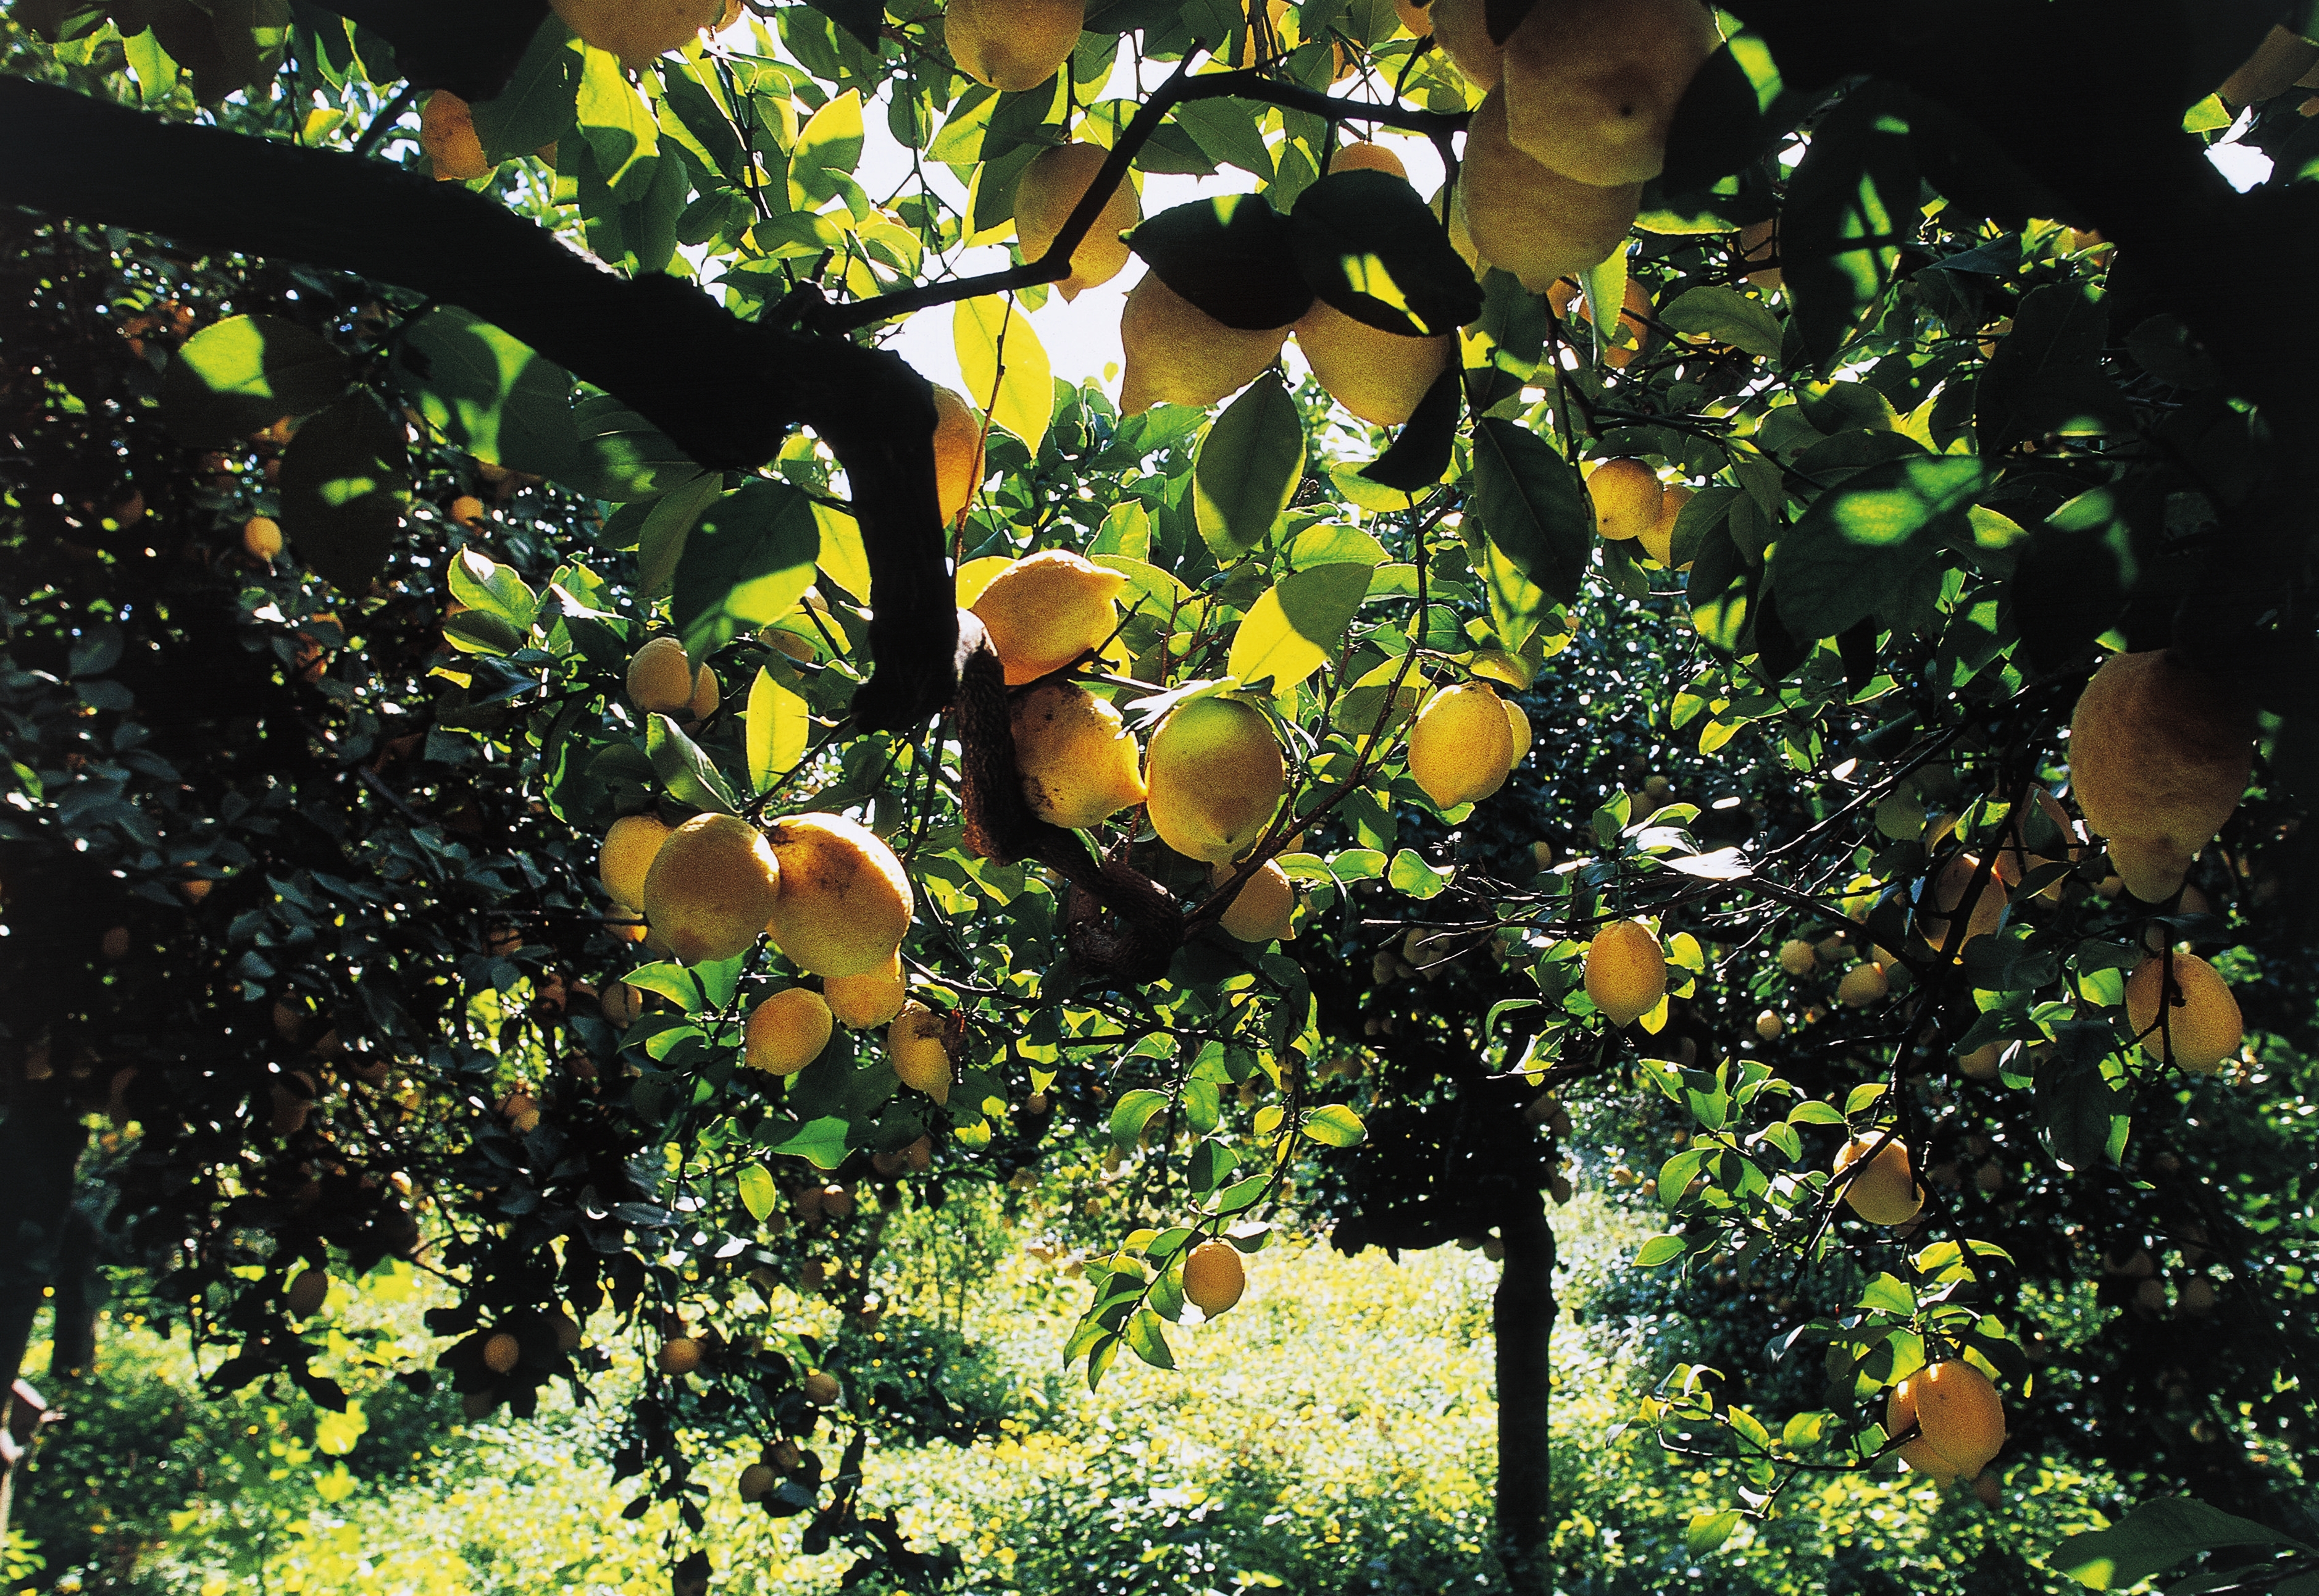 How citrus fruits became an ancient status symbol history in the citrus fruit crops in sicily italy credit deagostinigetty images biocorpaavc